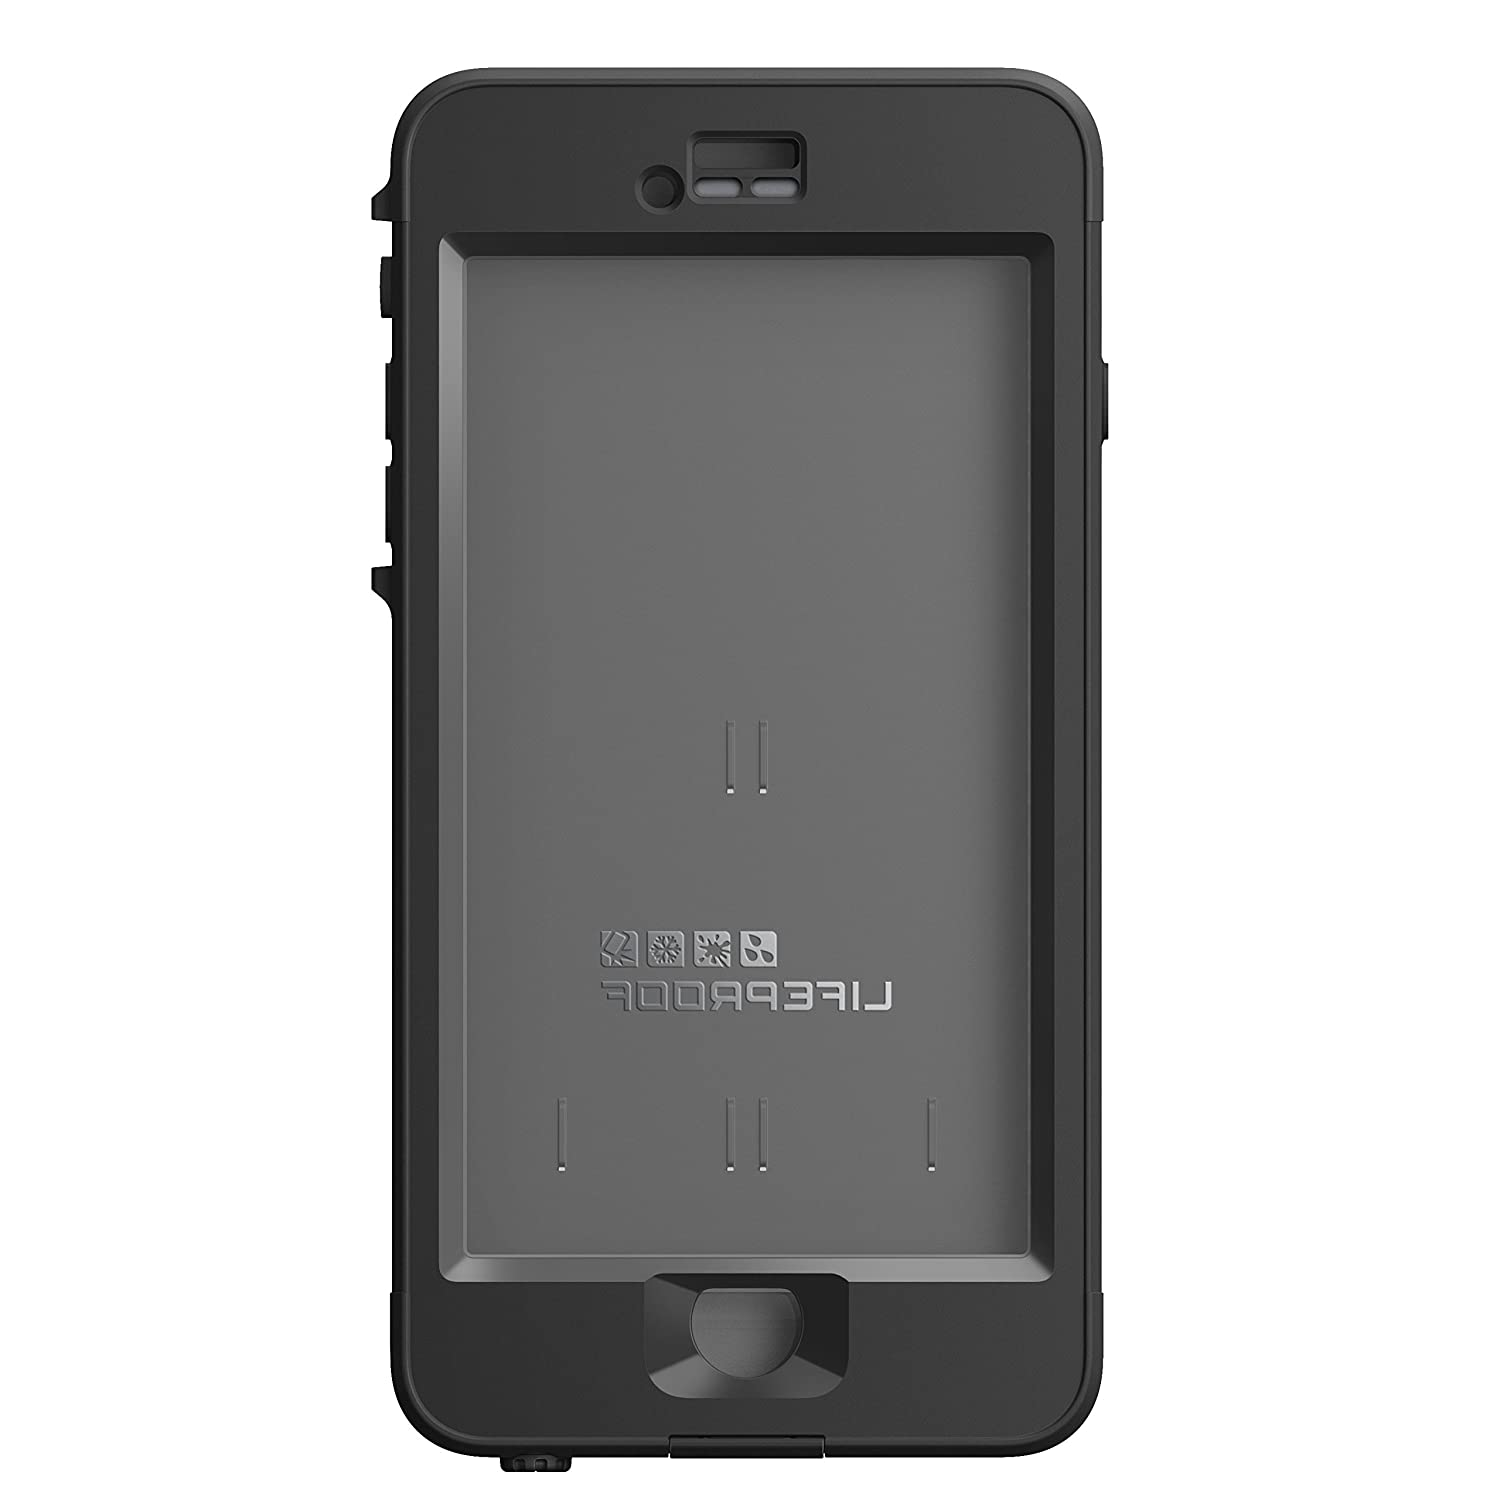 new authentic lifeproof nuud case for iphone 6 plus. Black Bedroom Furniture Sets. Home Design Ideas